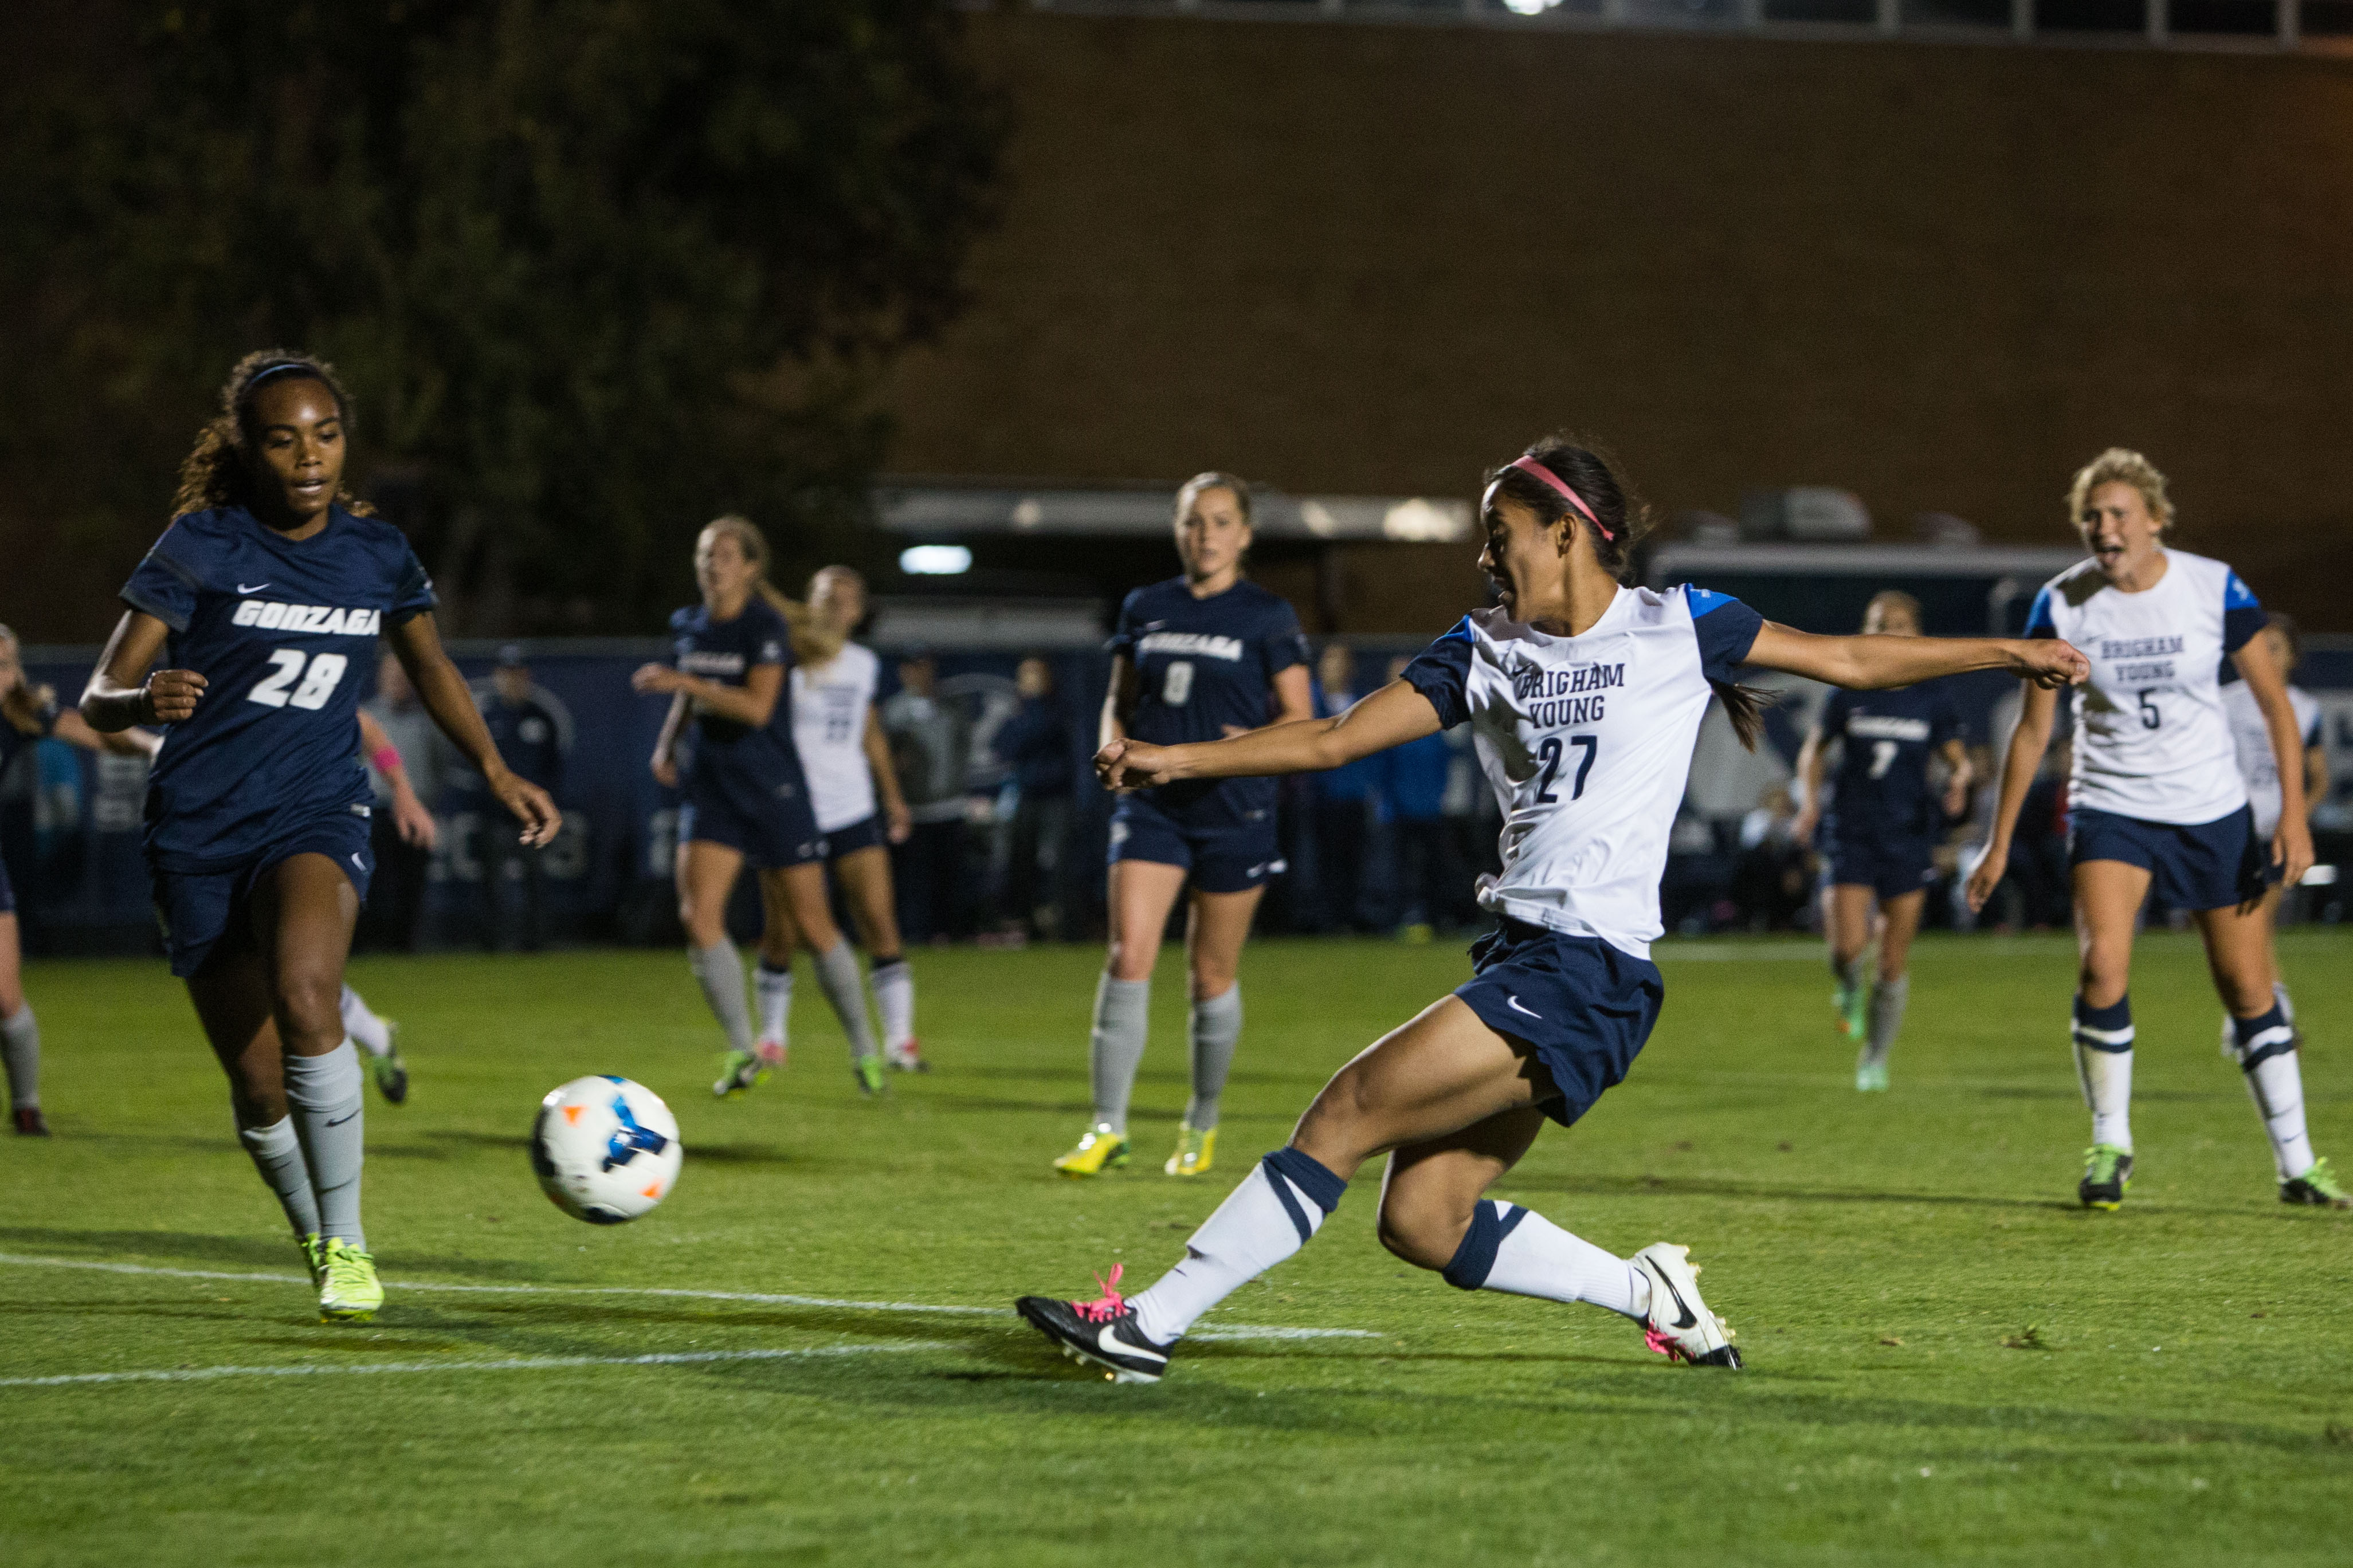 Elena Mederios scores the first goal in the game against Gonzaga (Universe Photo.)